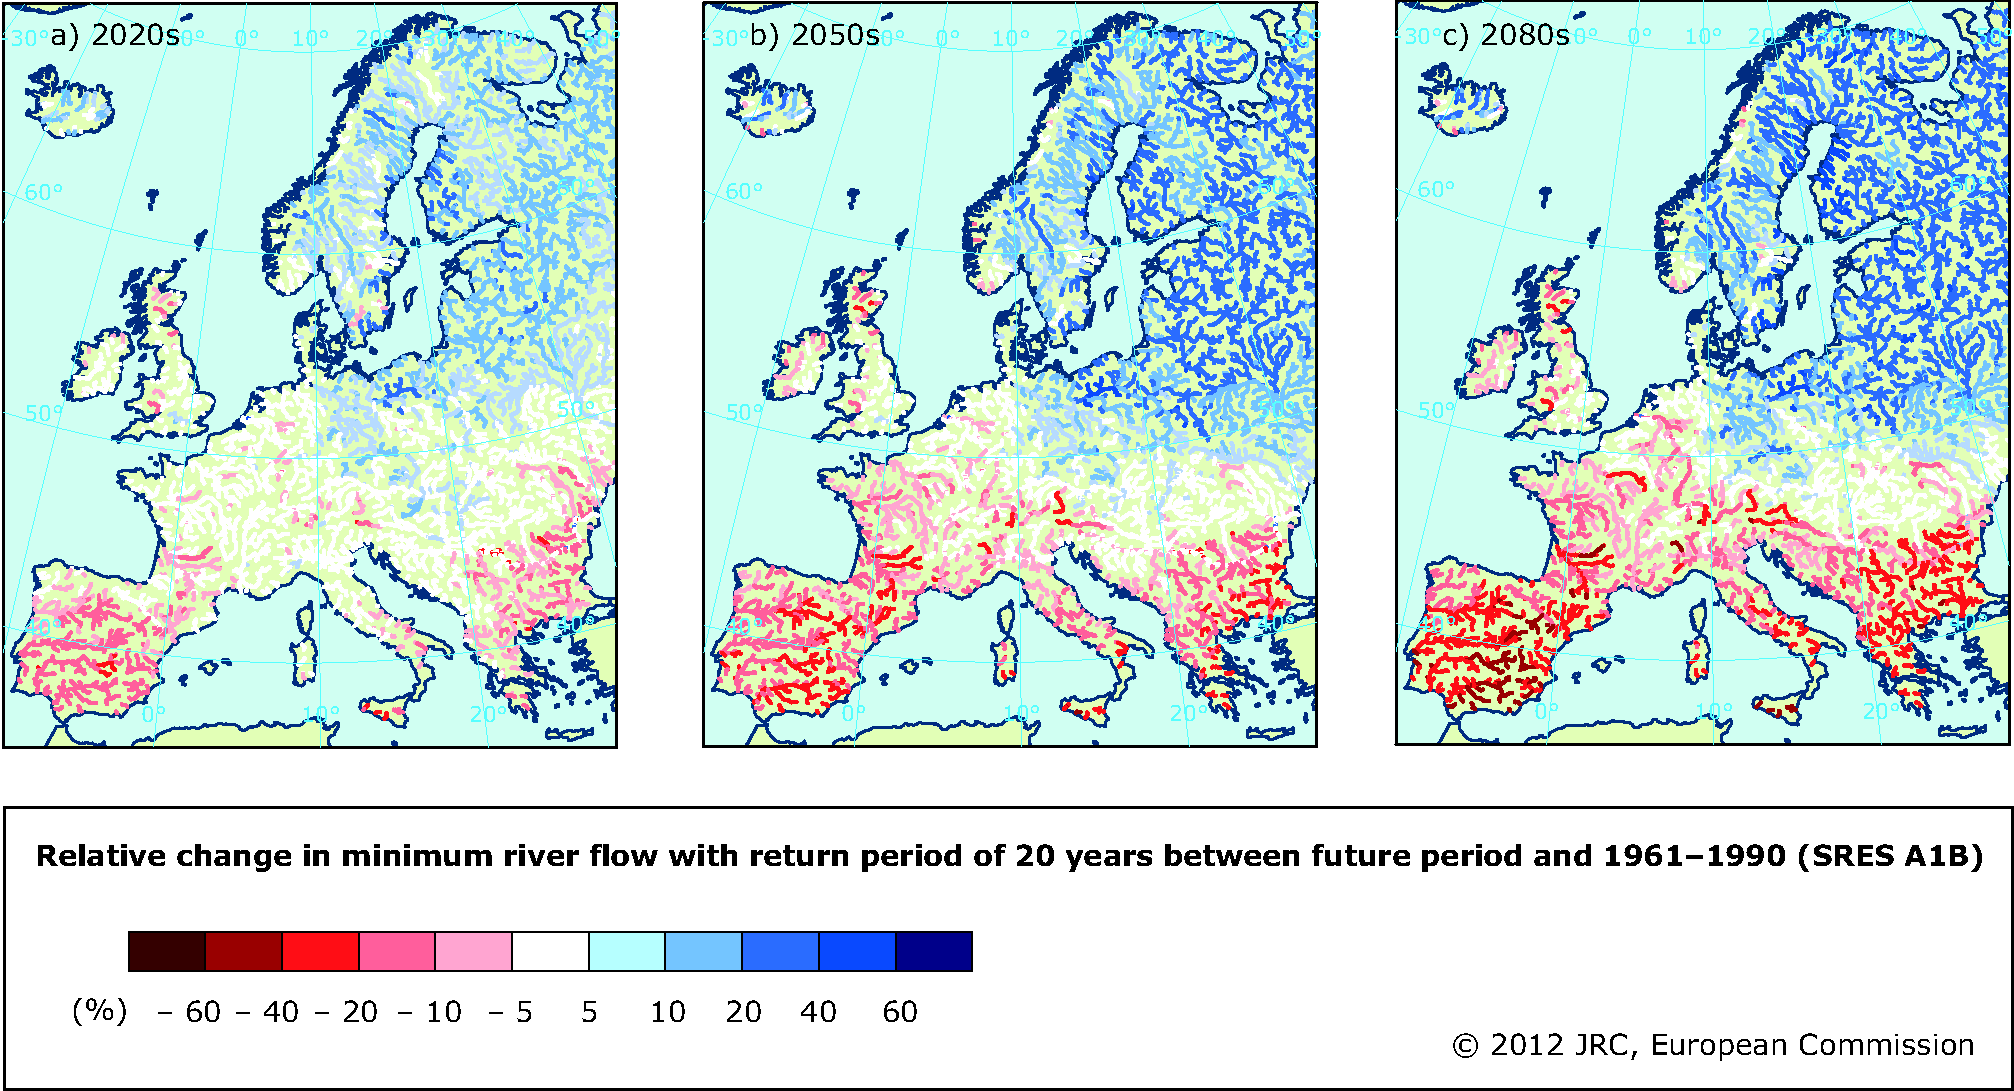 Projected change in minimum river flow with return period of 20 years